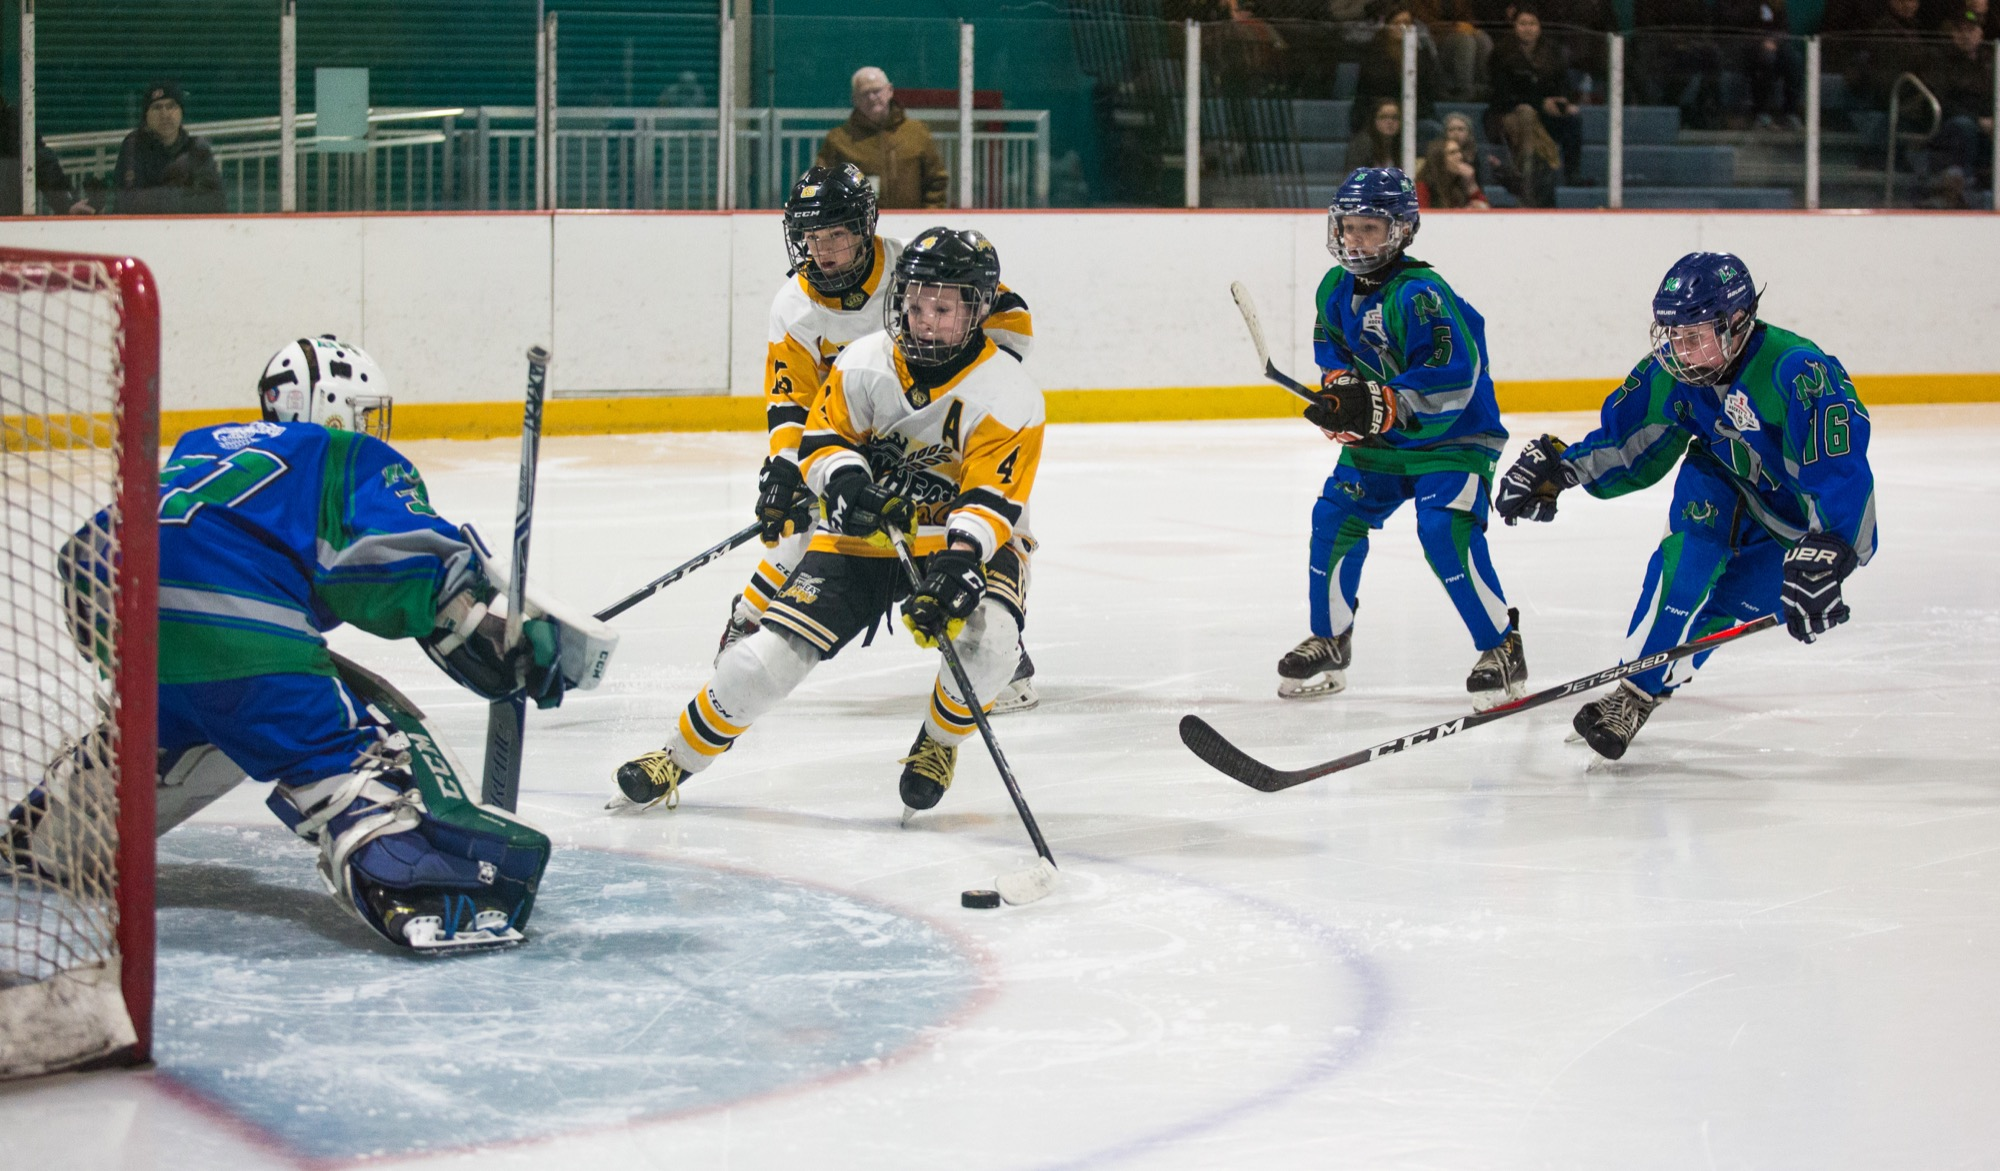 Pee Wee AA Brandon Wheat Kings player Clarke Caswell lines up a shot against the Melfort Mustangs during the Tournament of Champions in the Kinsmen Arena at the Keystone Centre on Saturday.